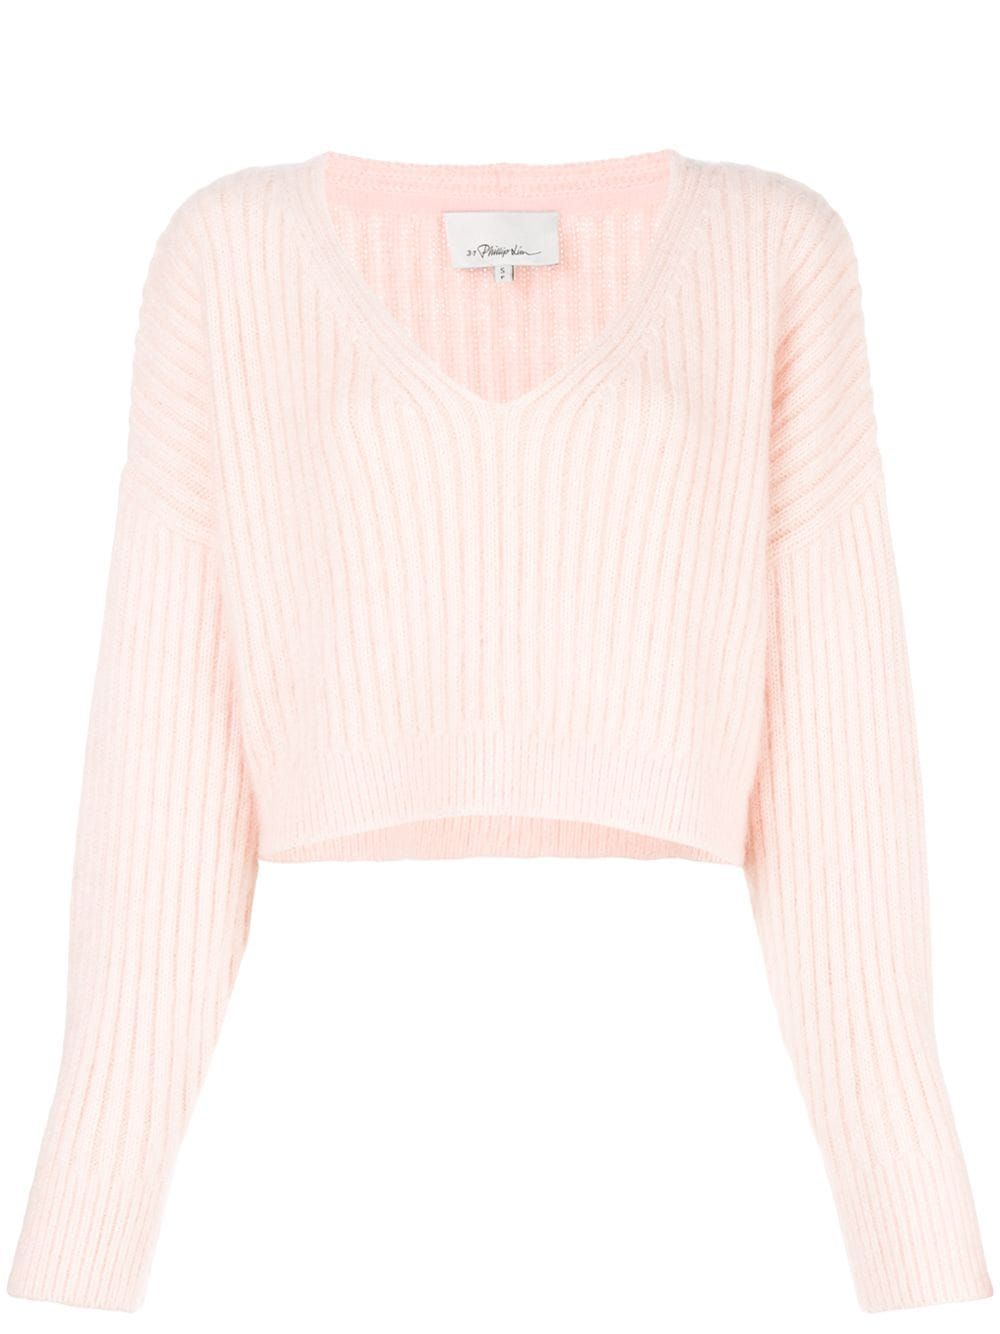 3.1 Philip Lim Cropped V-Neck Sweater